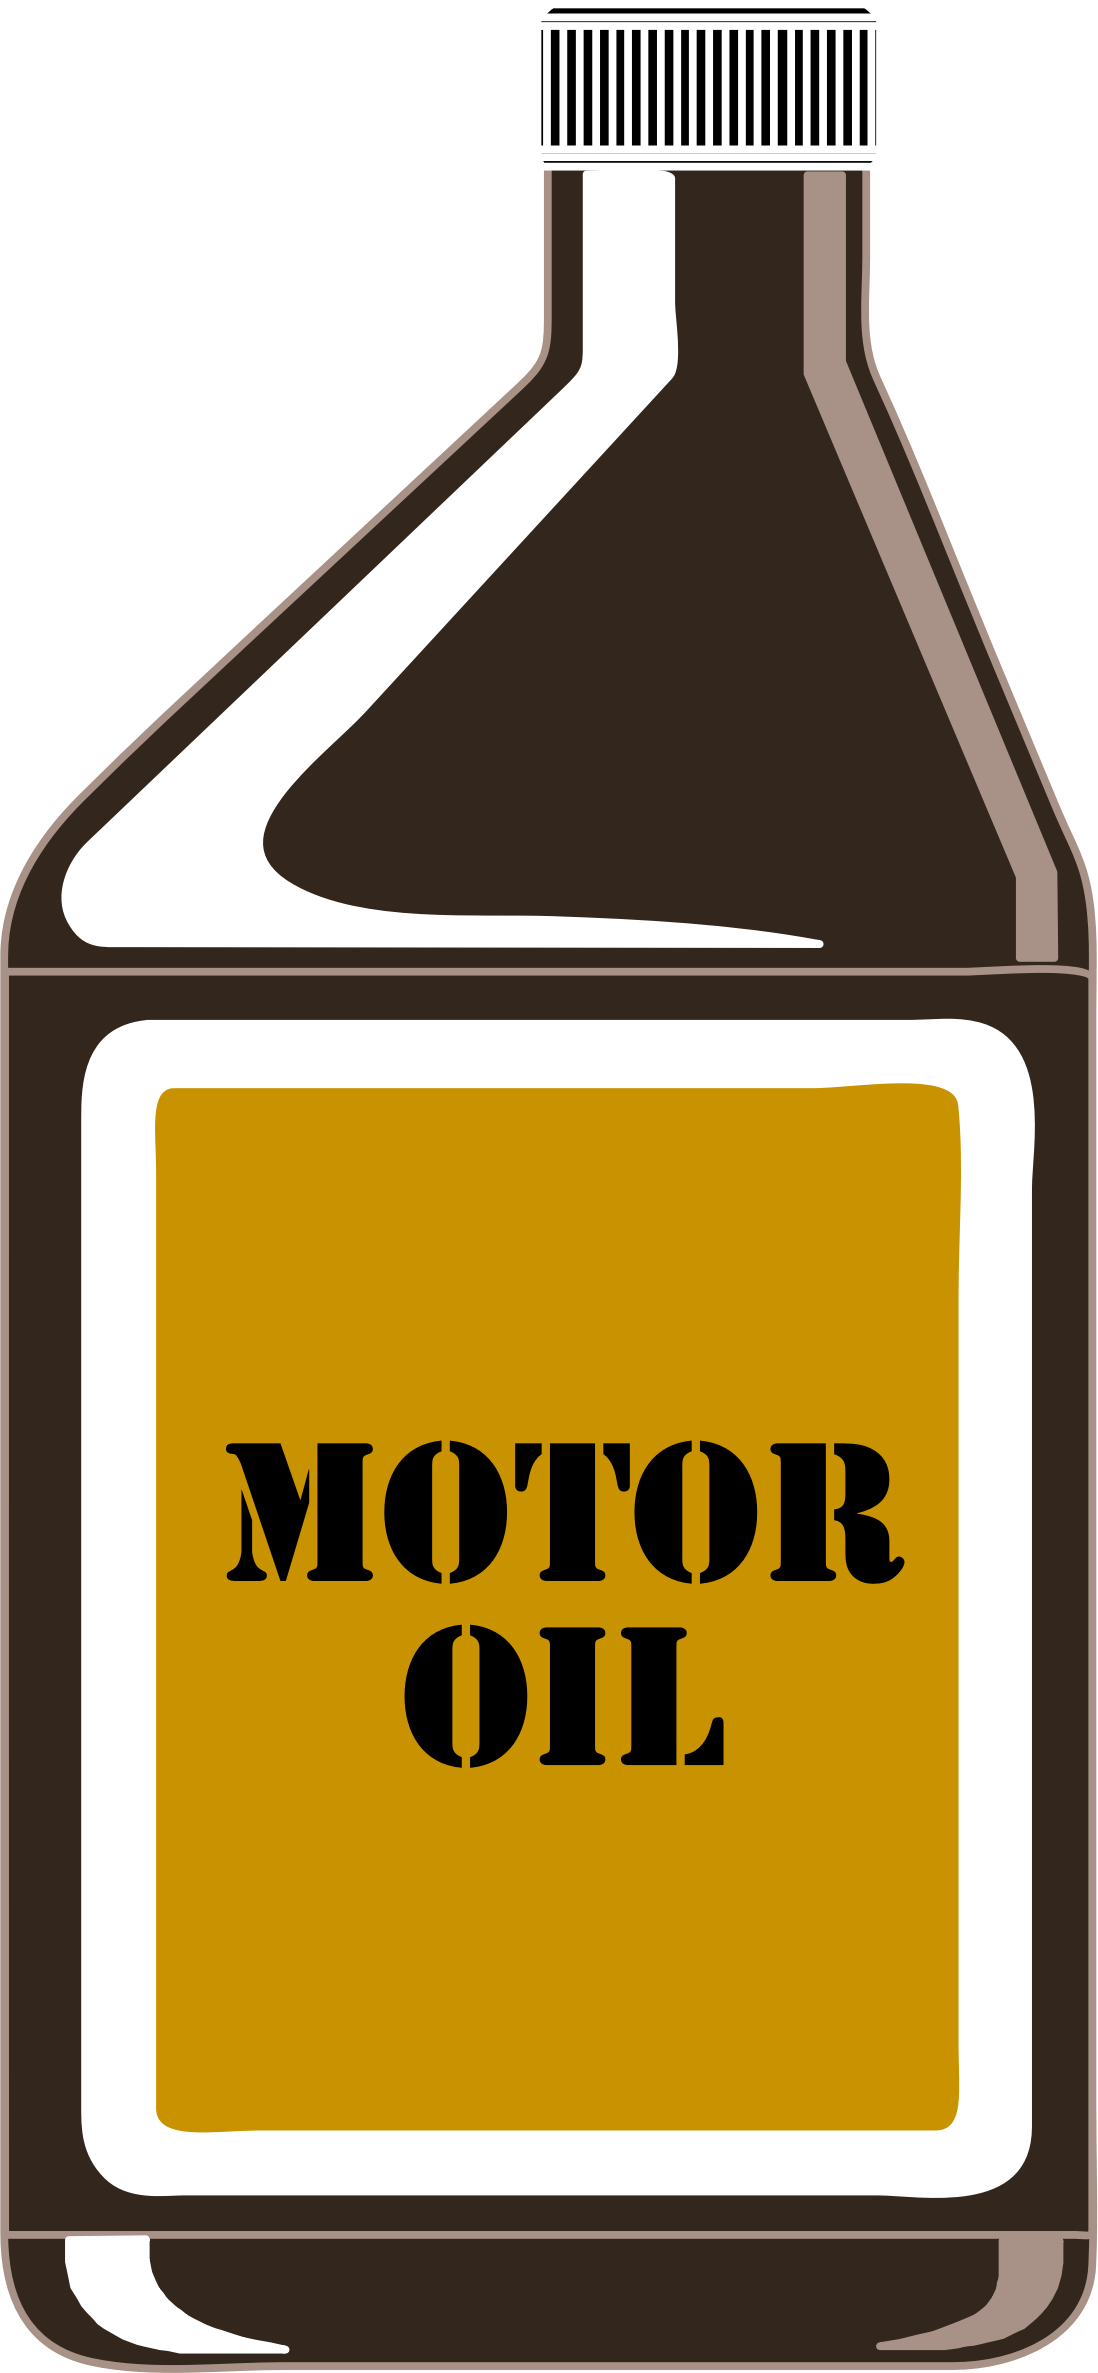 motor oil by cactus cowboy